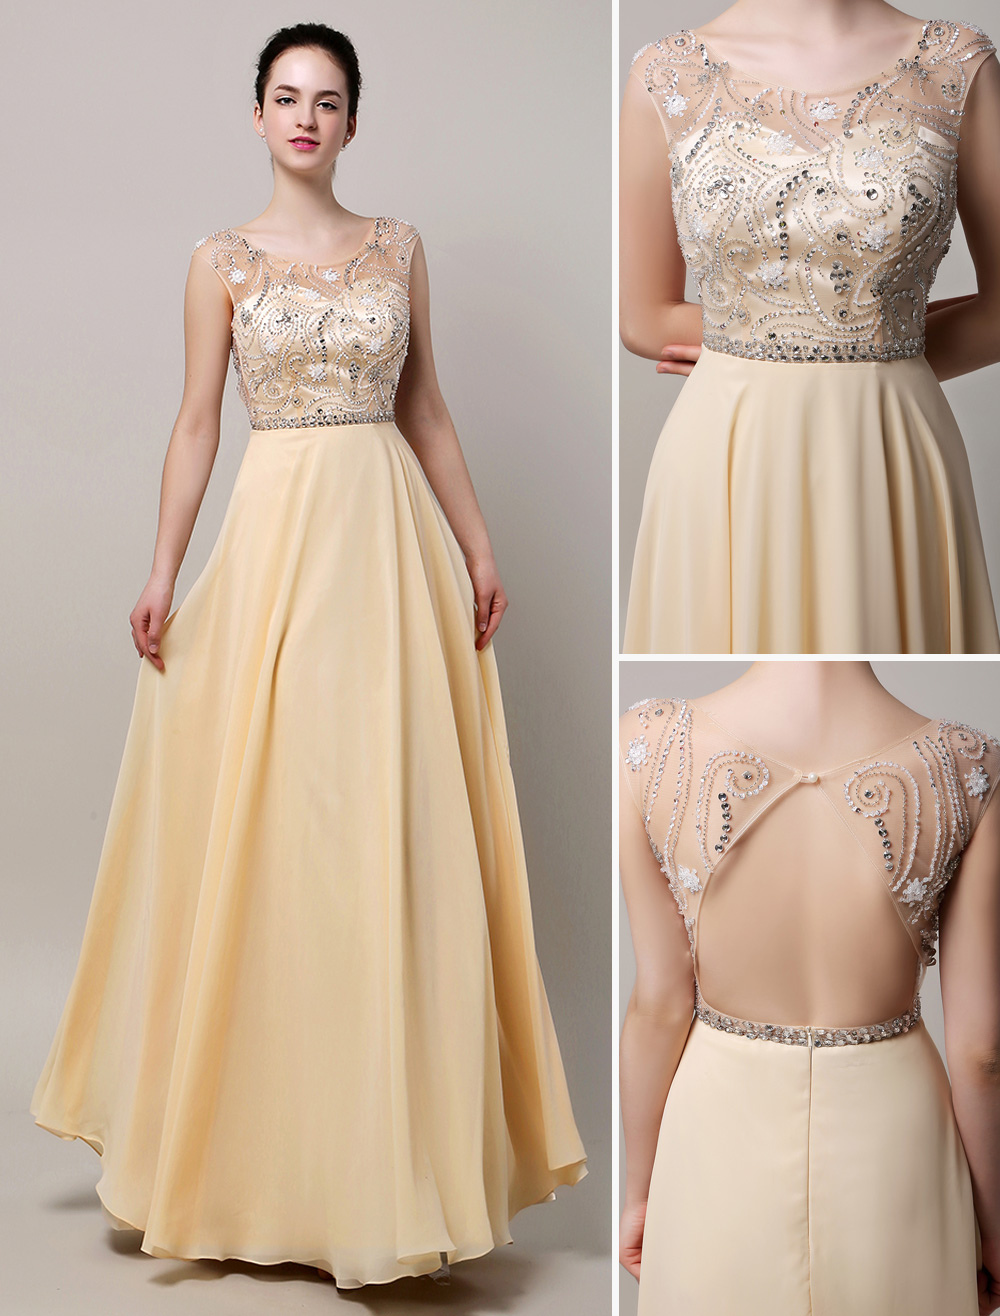 Champange Floor Length Chiffon Prom Dress with illusion Neckline and Open Back